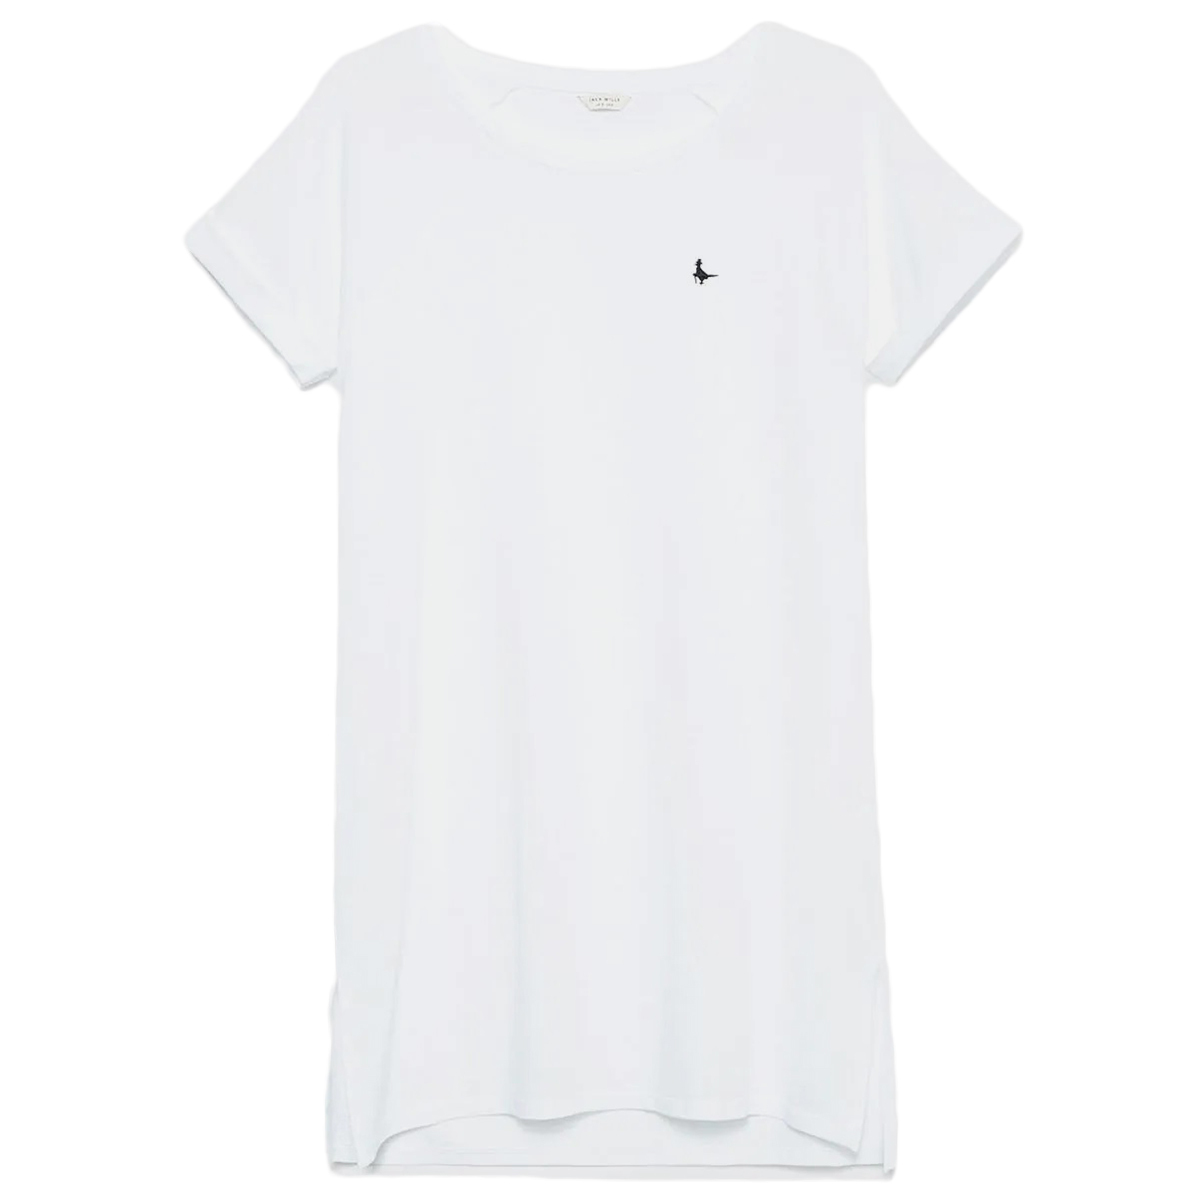 Jack Wills Women's Raglan Short-Sleeve Tee - White, 6